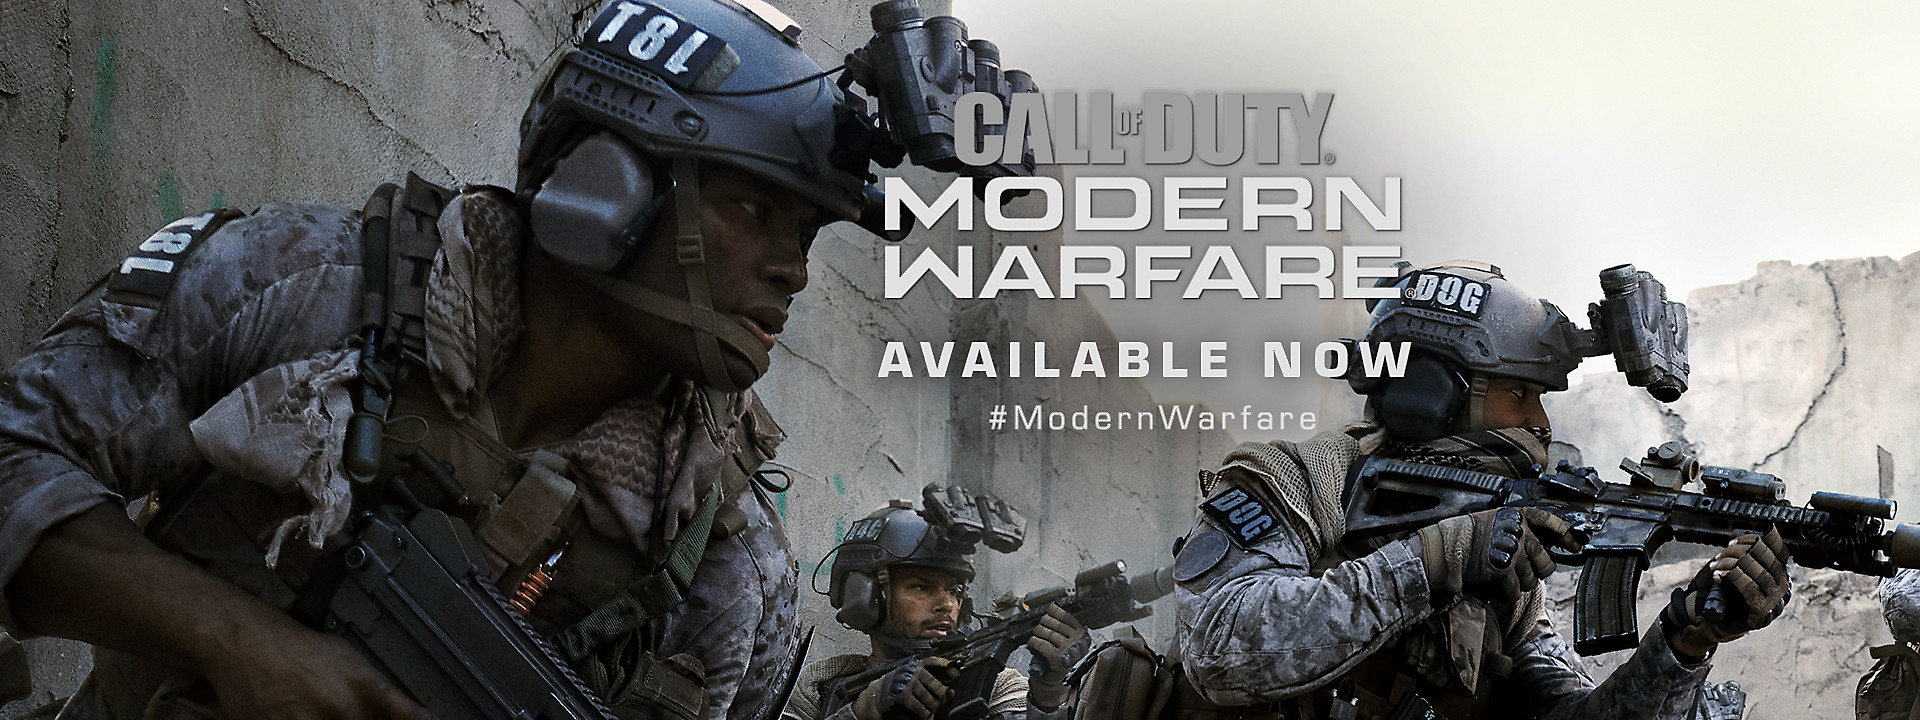 Call of Duty: Modern Warfare - Available Now